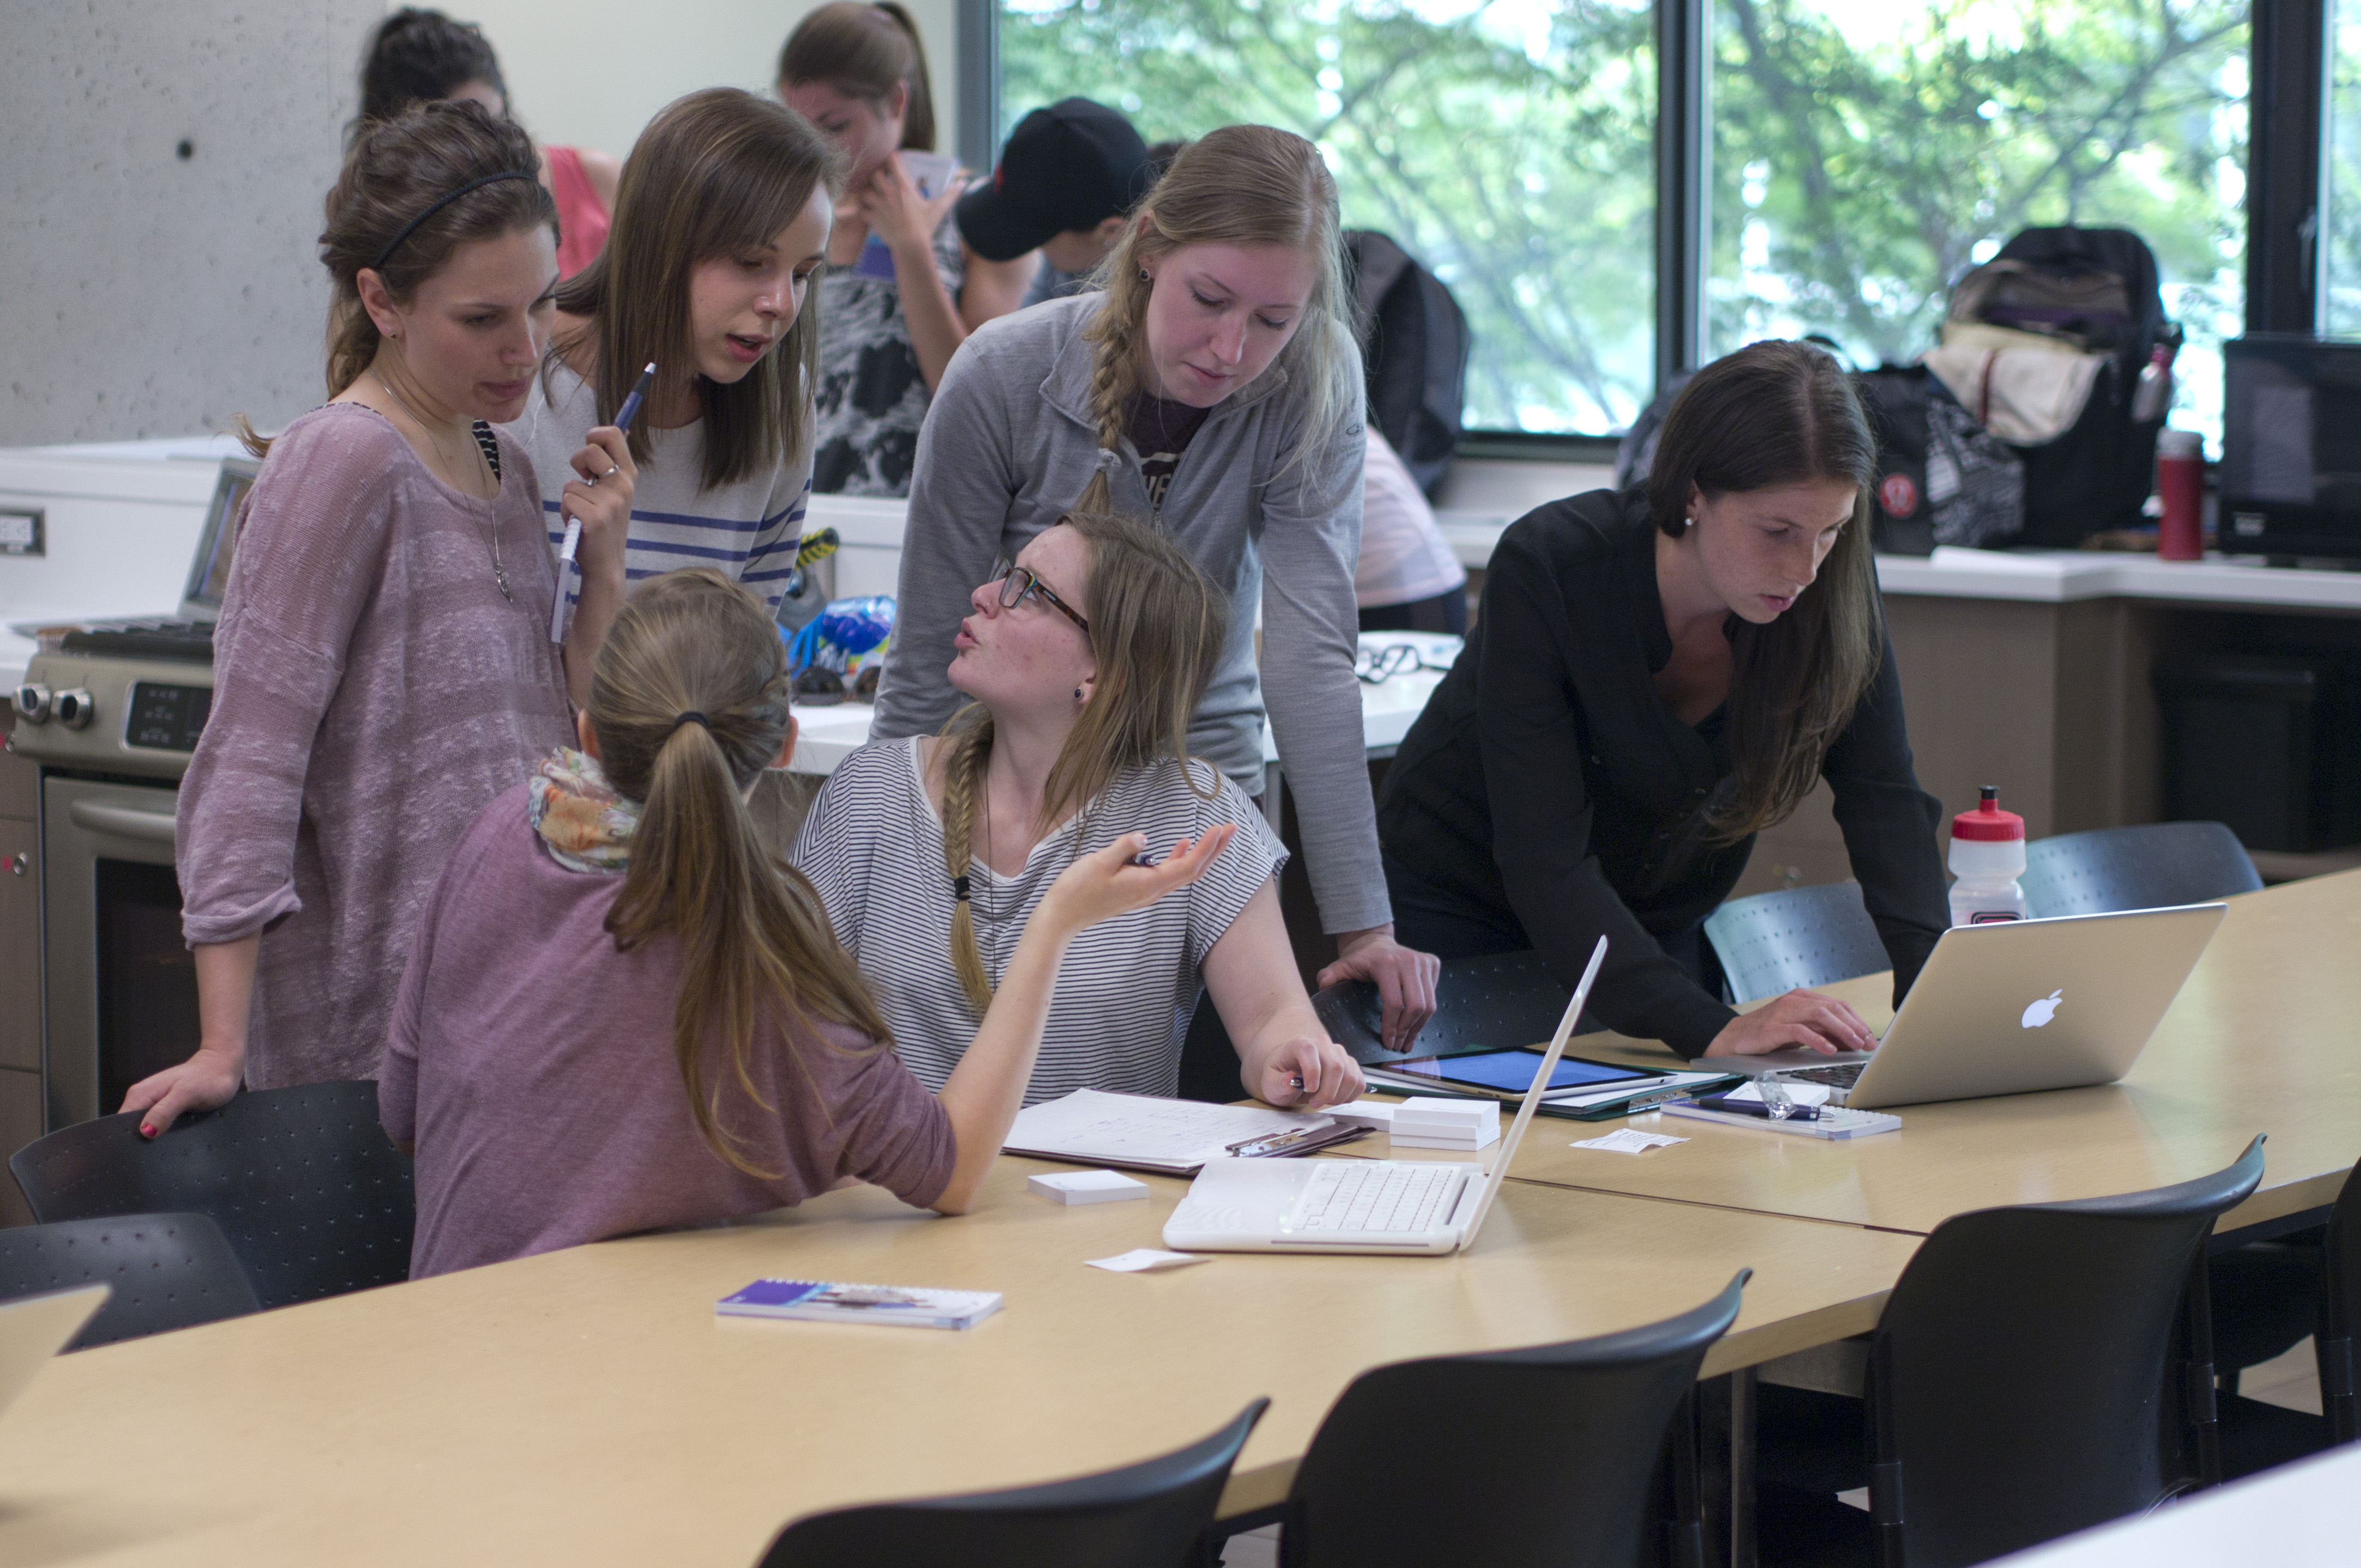 Students engaged in discussion